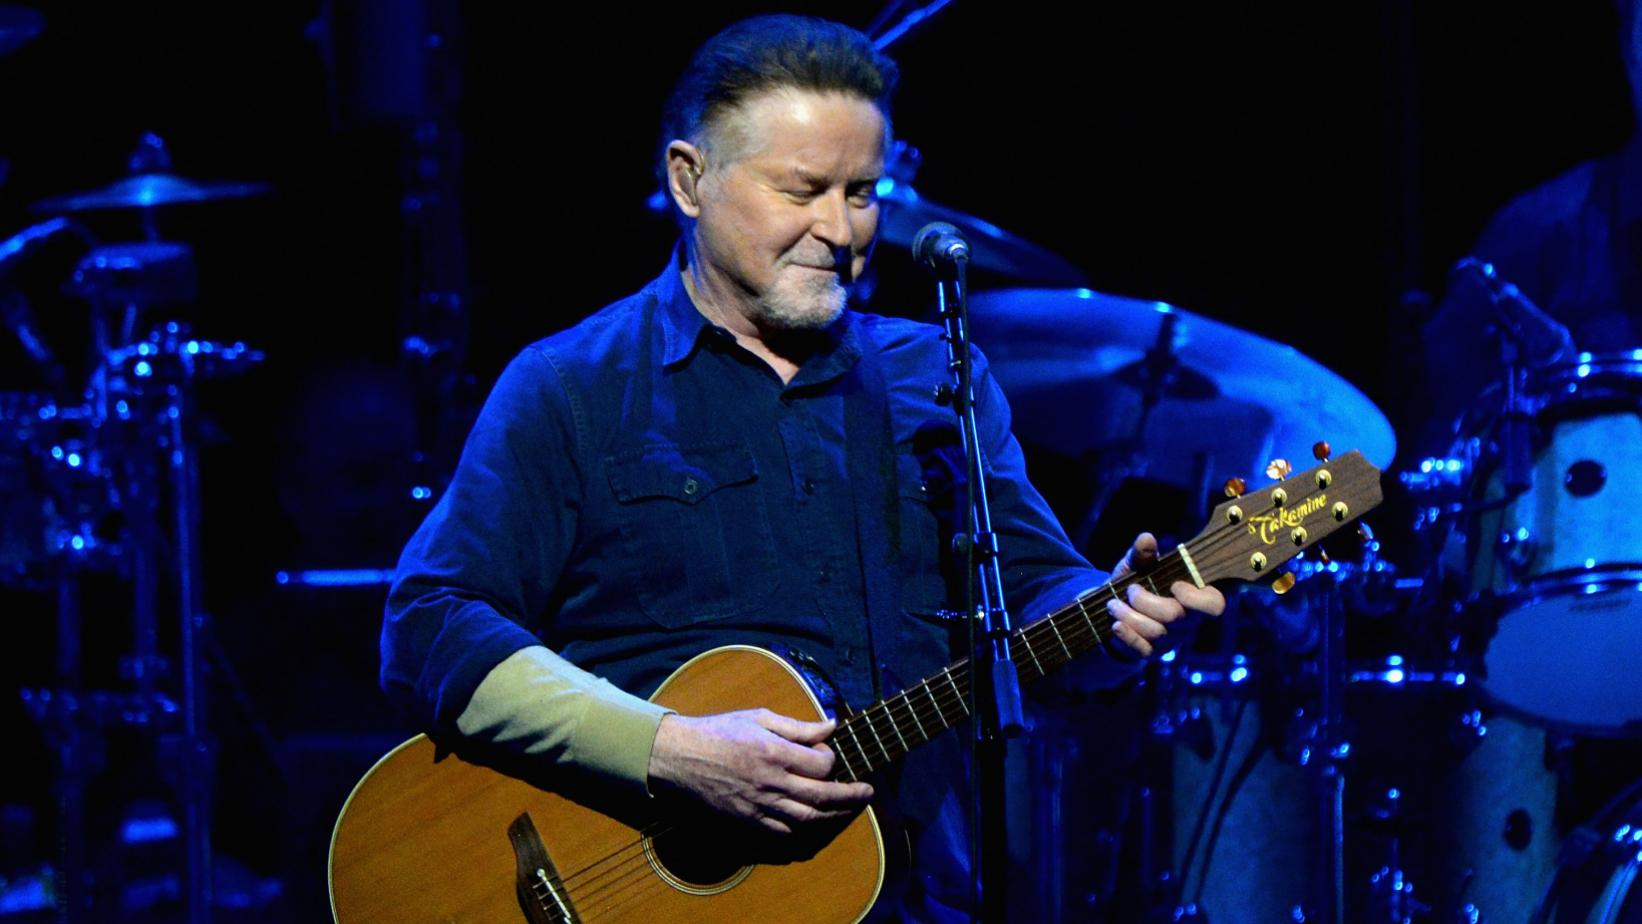 Don Henley performs with the Eagles in 2017